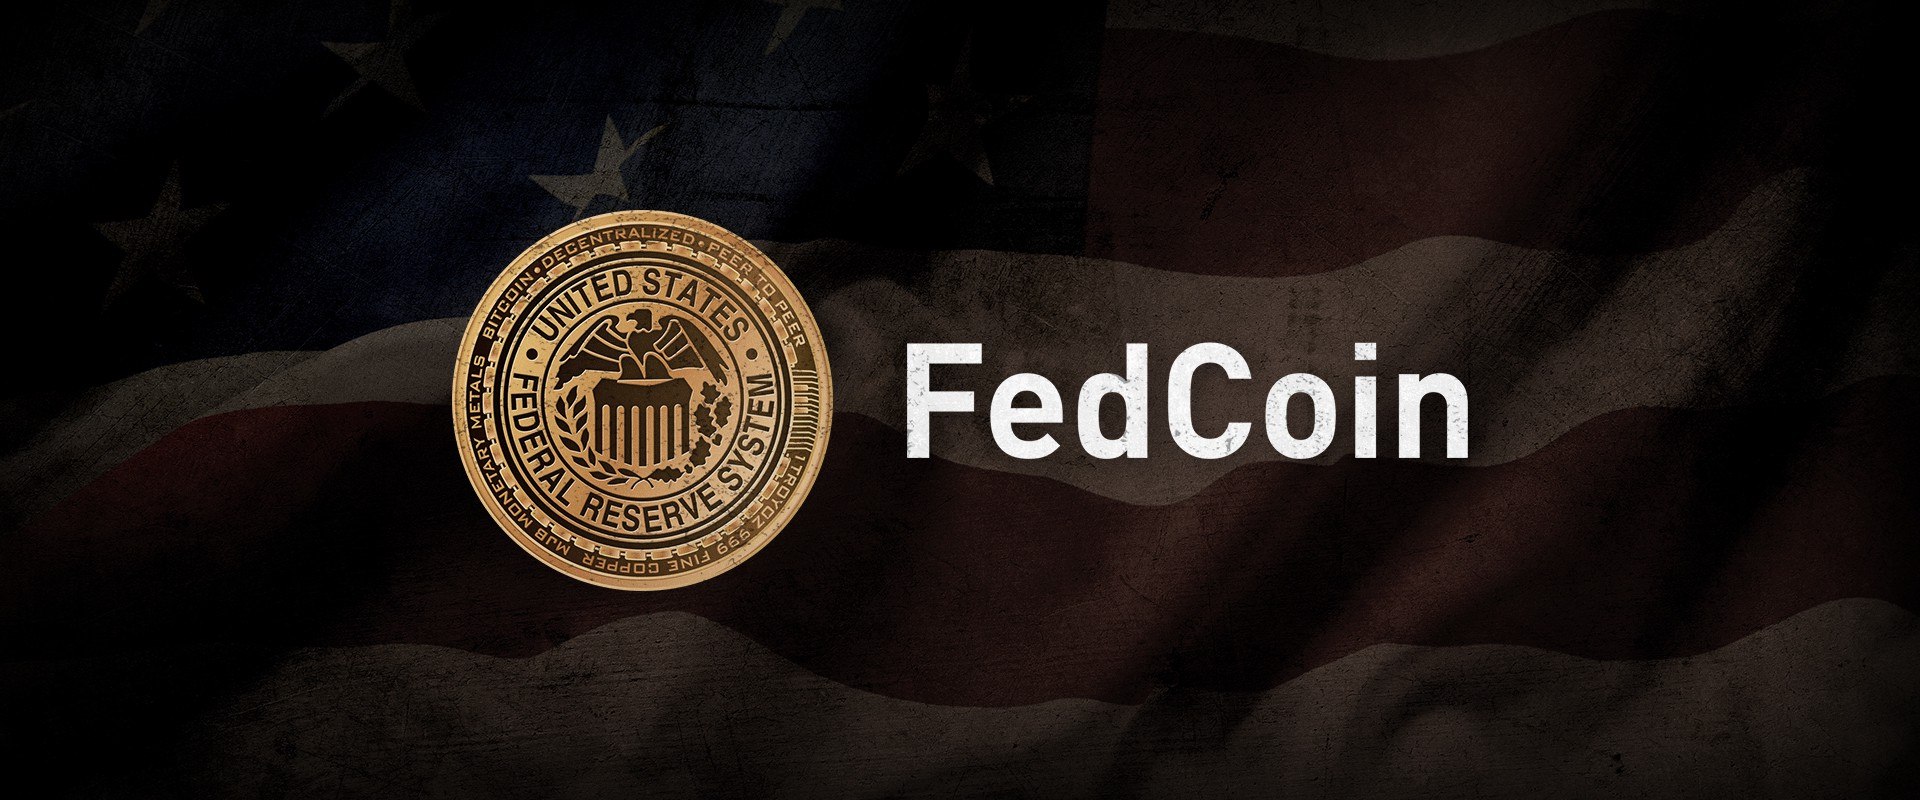 /the-terrifying-future-of-fedcoin-ddcbef2b9592 feature image